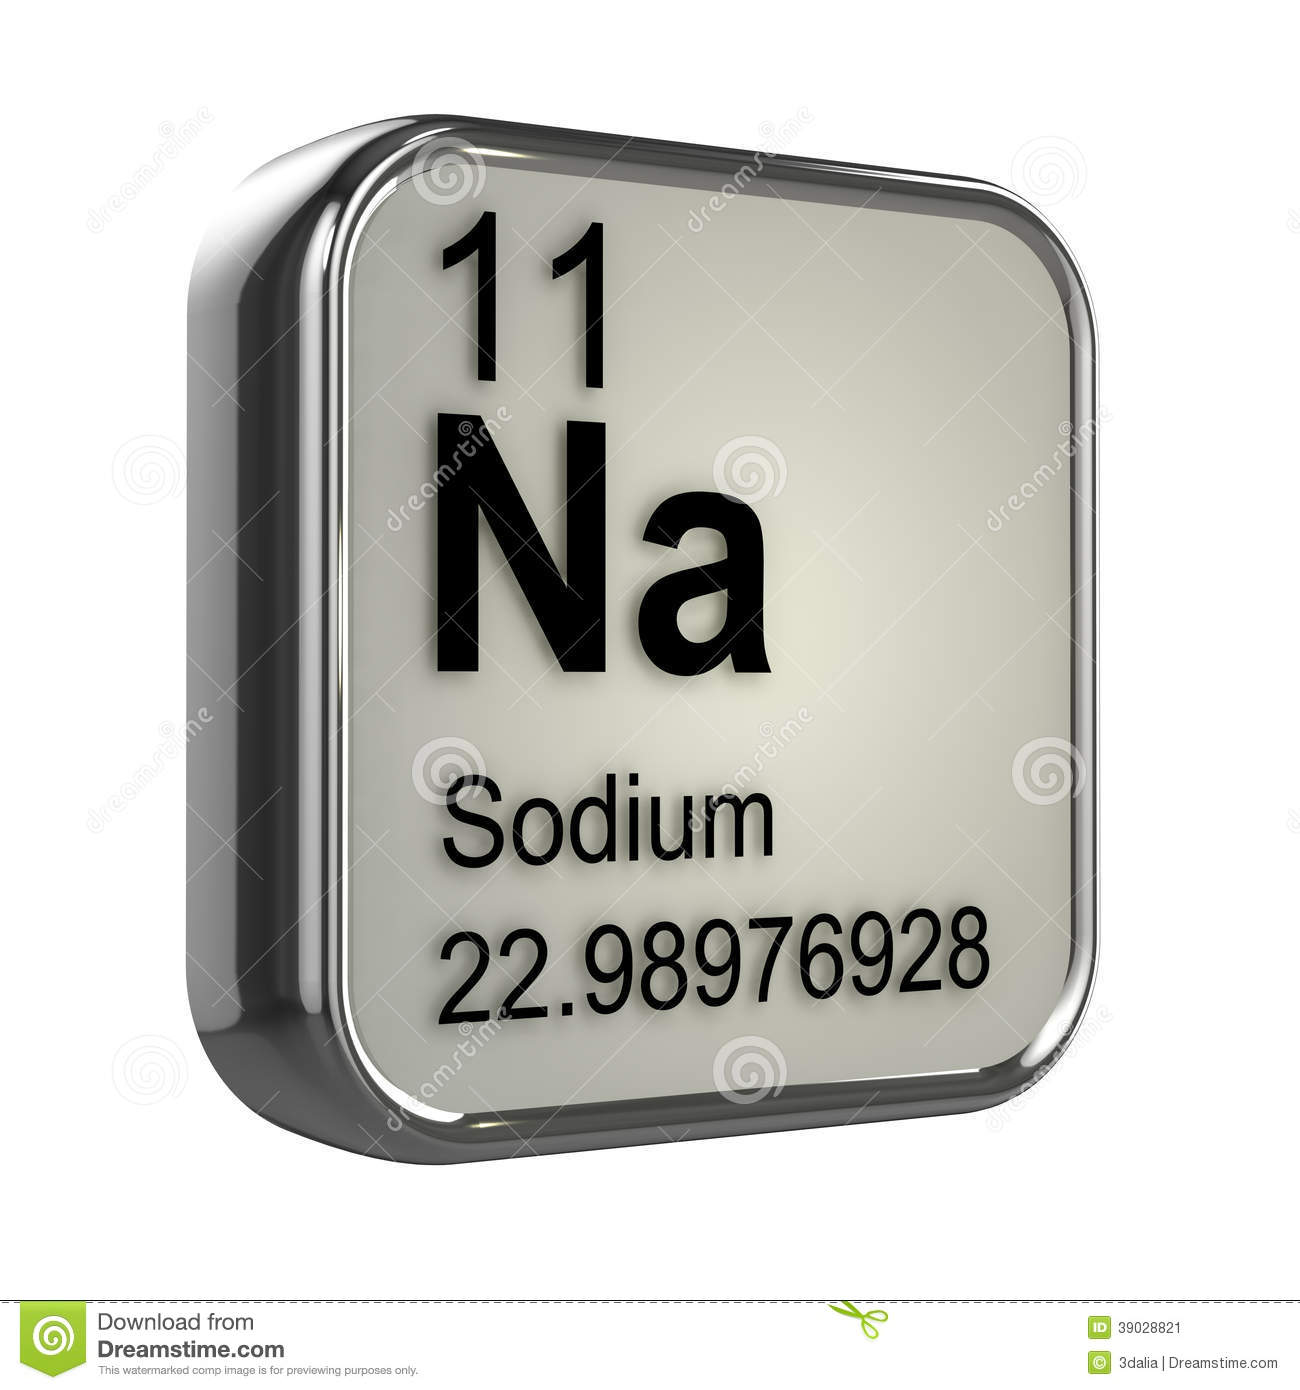 Pictures, stories, and facts about the element Sodium in the ...